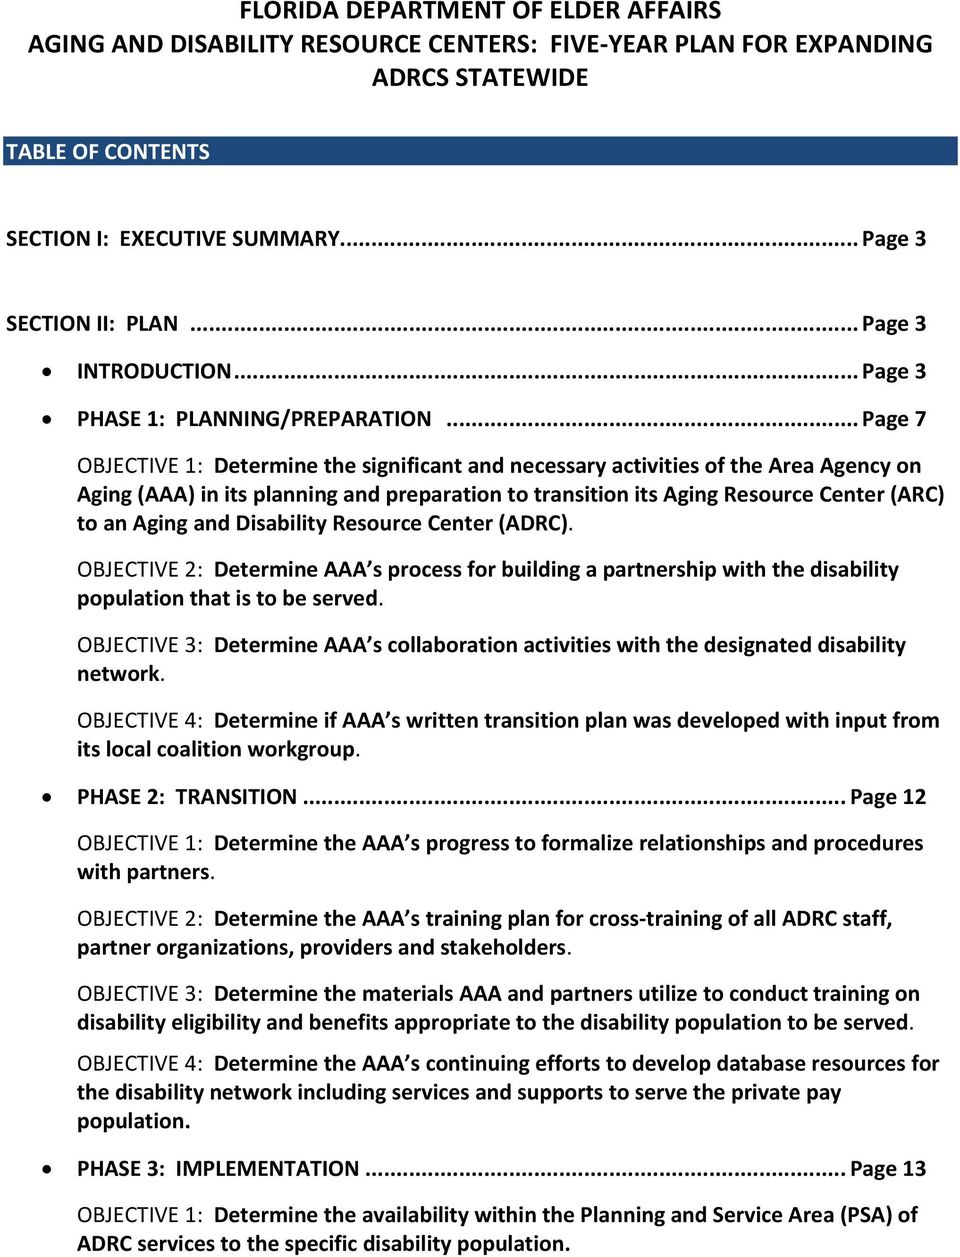 .. Page 7 OBJECTIVE 1: Determine the significant and necessary activities of the Area Agency on Aging (AAA) in its planning and preparation to transition its Aging Resource Center (ARC) to an Aging